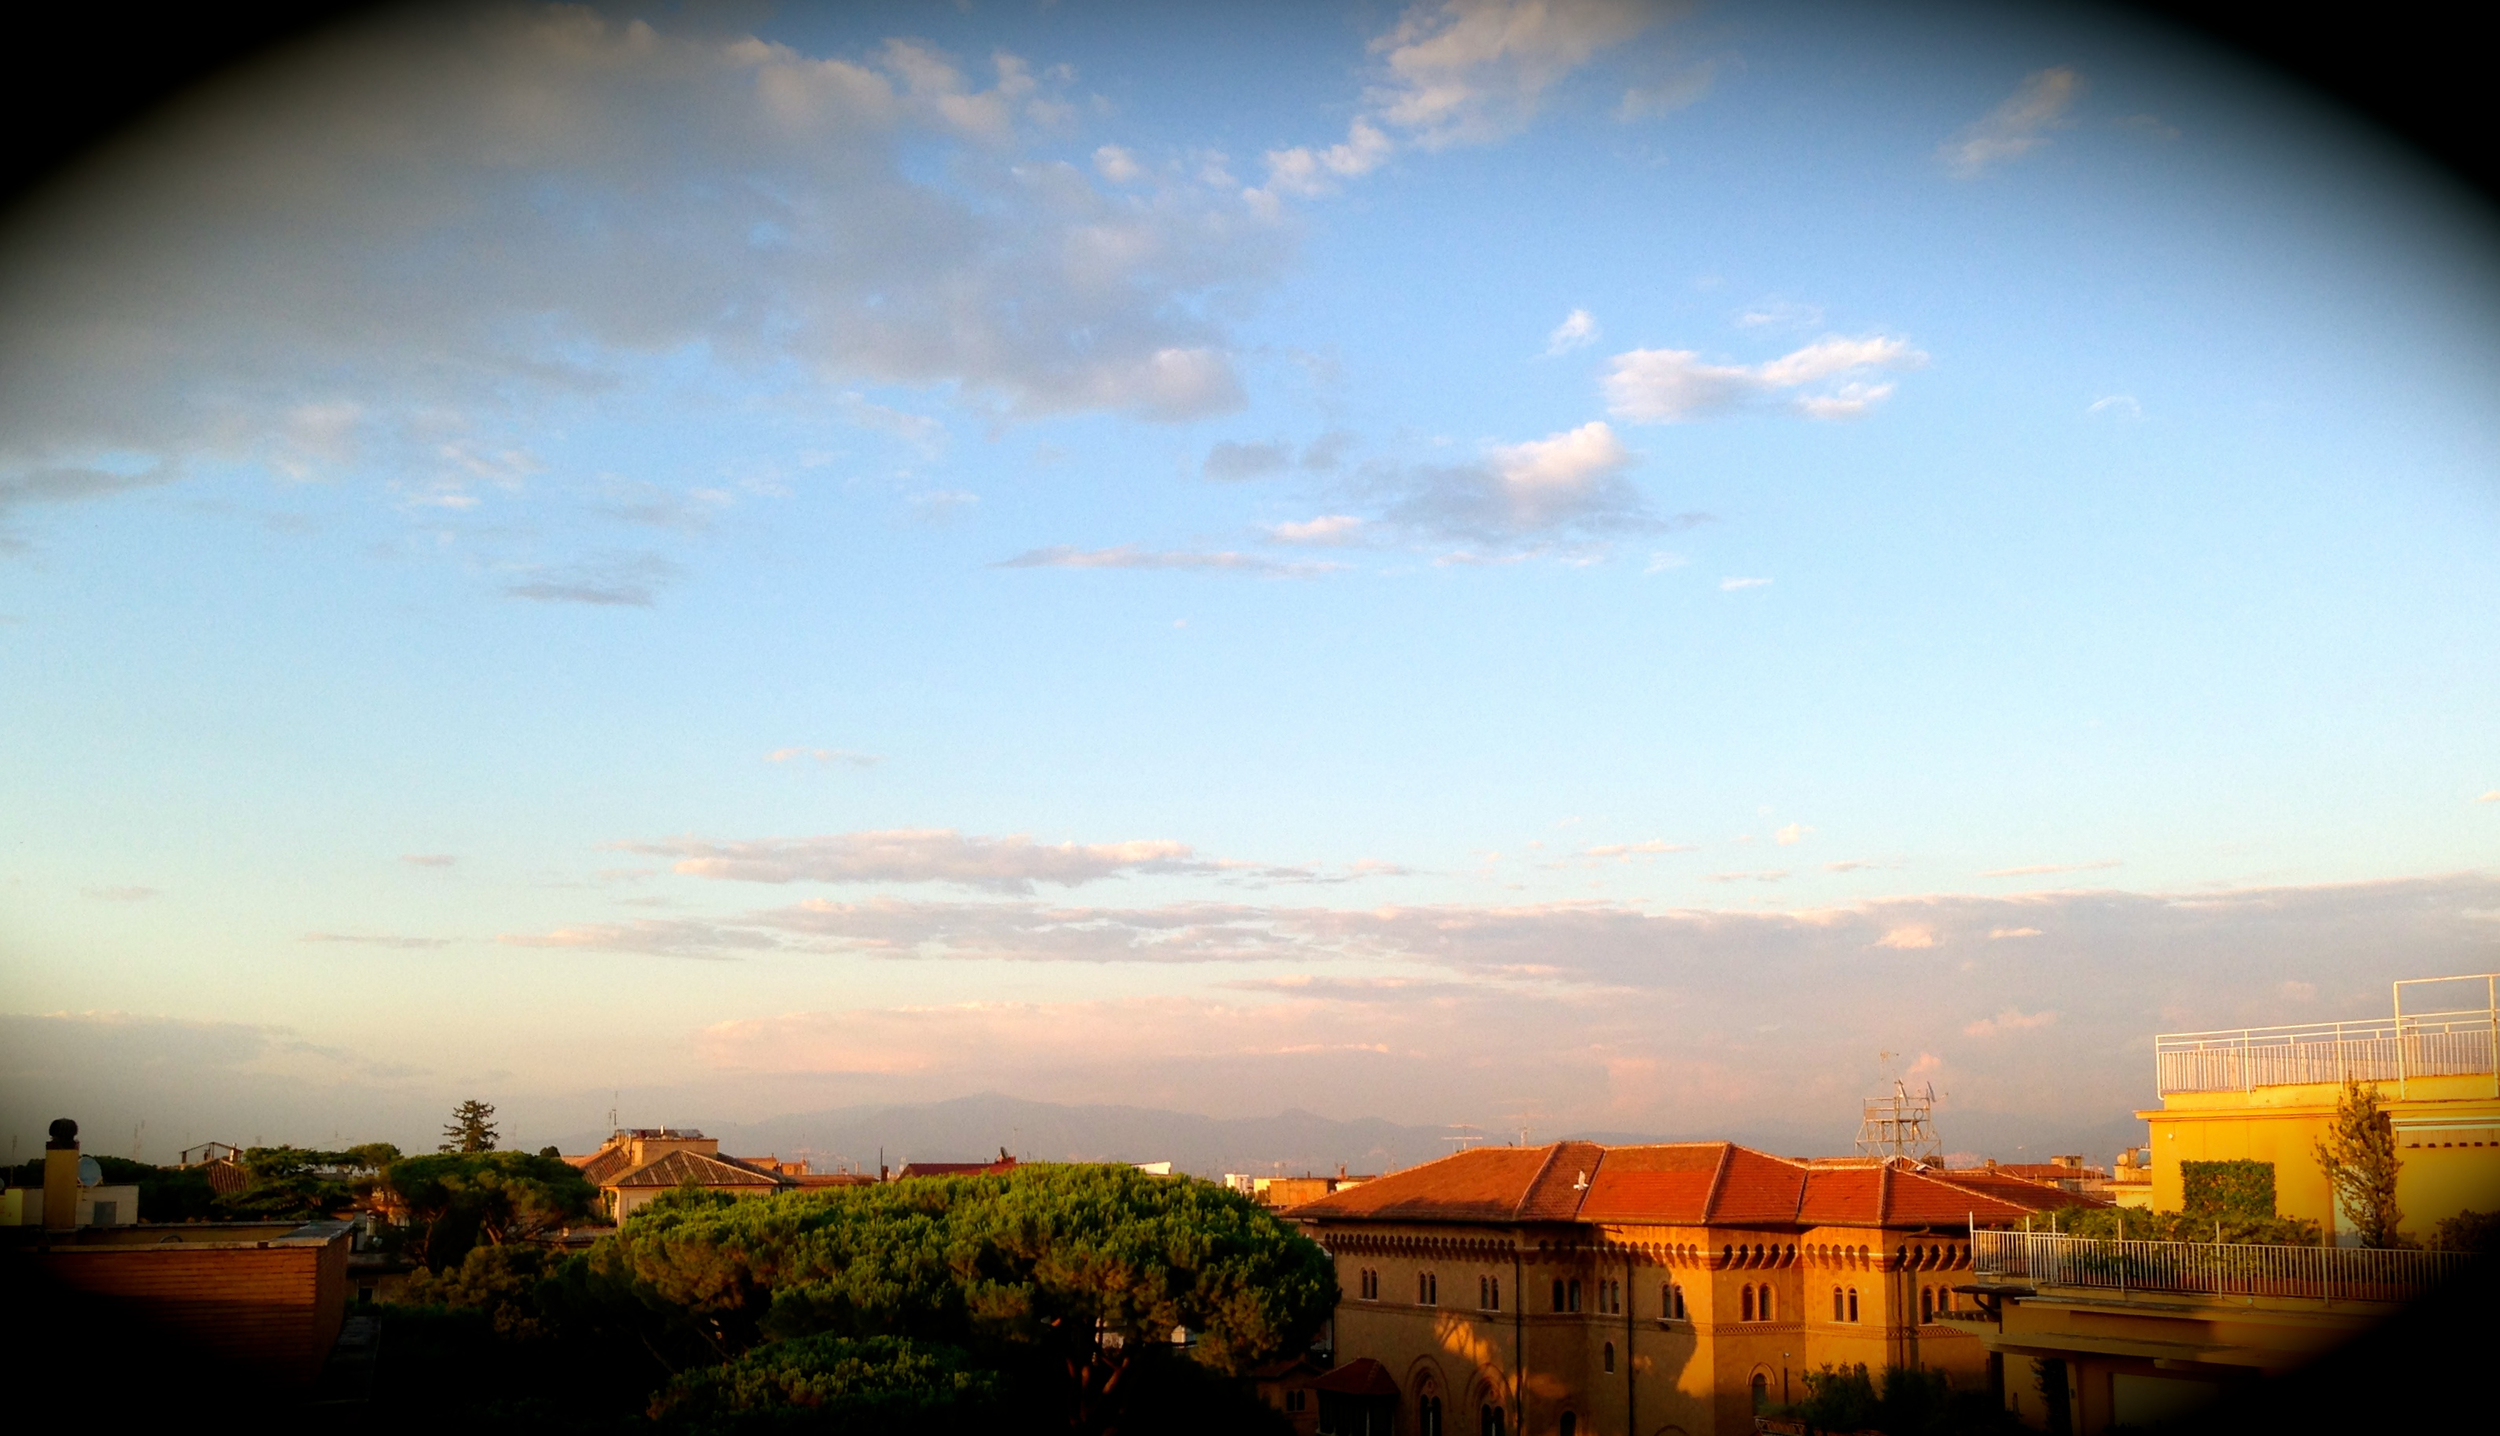 The view from my apartment building's rooftop, which sums up what I've seen of Rome thus far.